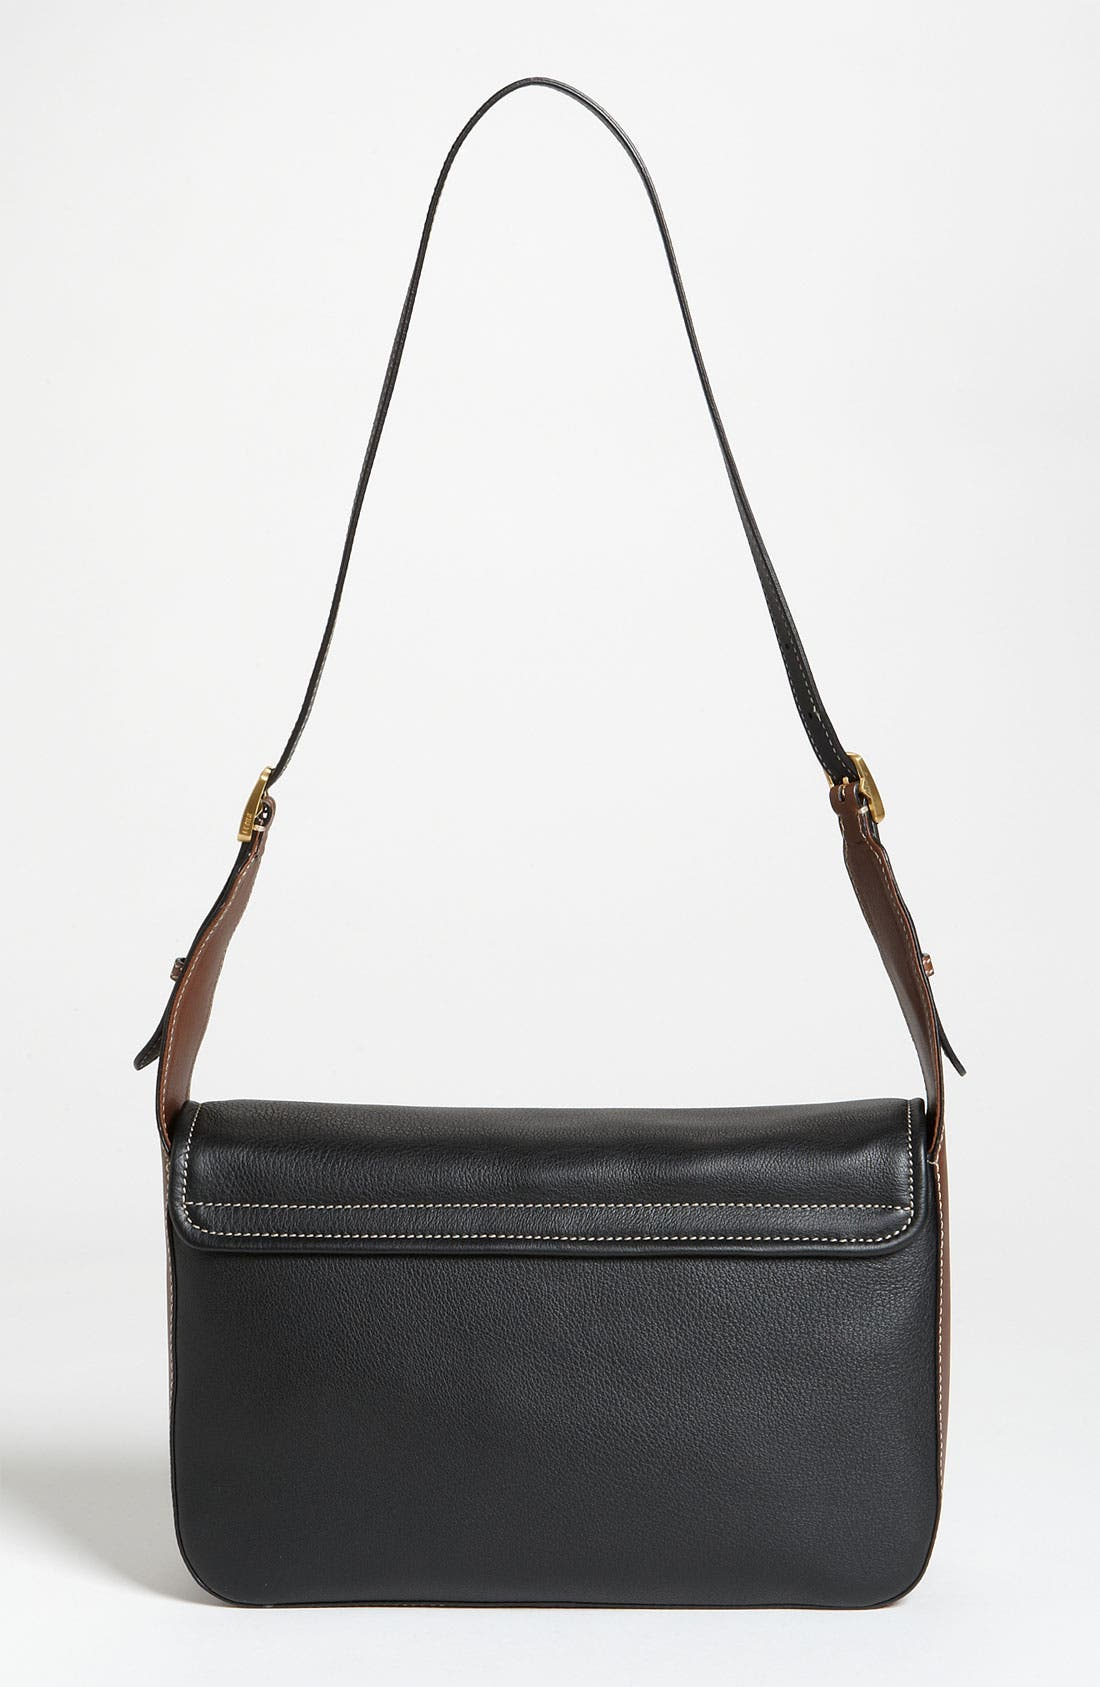 'Chameleon' Leather Shoulder Bag,                             Alternate thumbnail 4, color,                             Black/ Brown